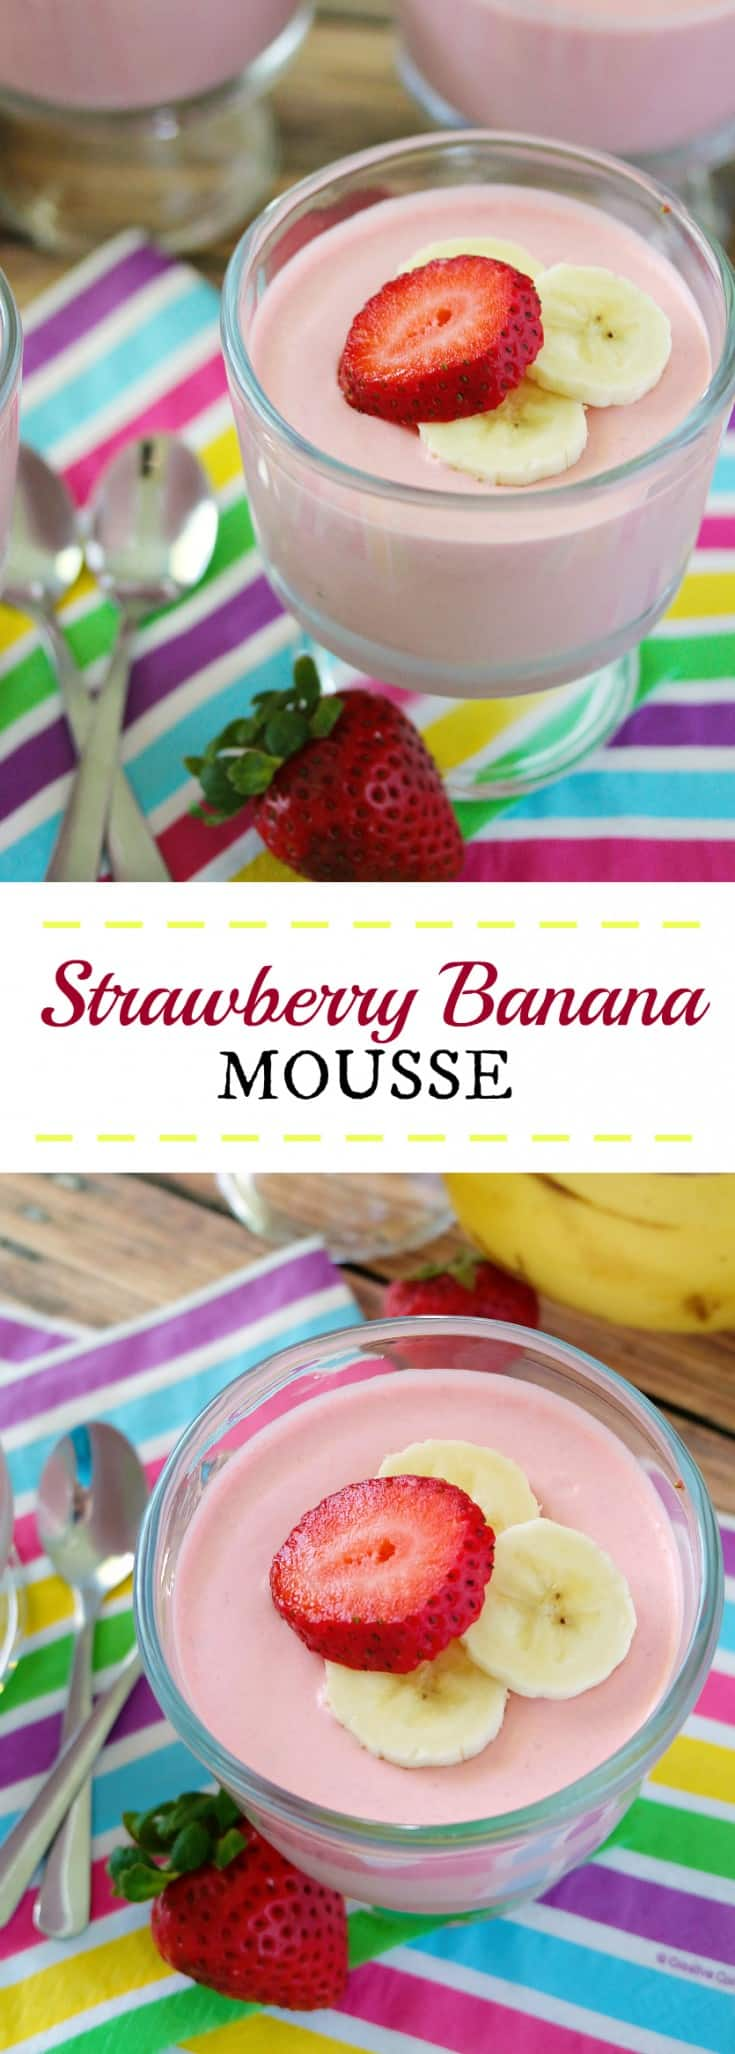 Strawberry Banana Mousse Recipe